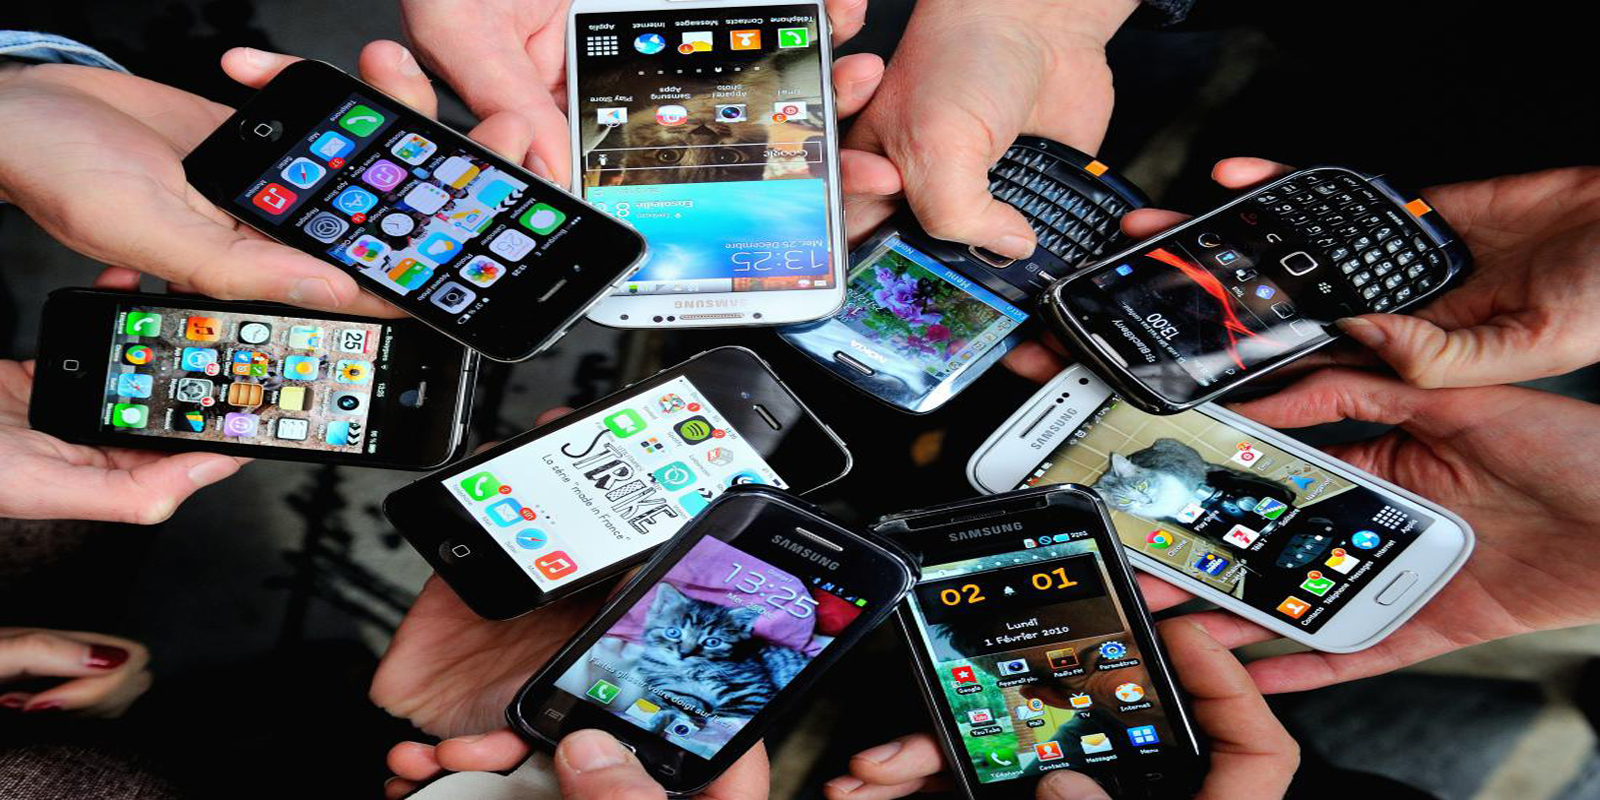 FRANCE-ECONOMY-TELECOMMUNICATION-SMARTPHONES